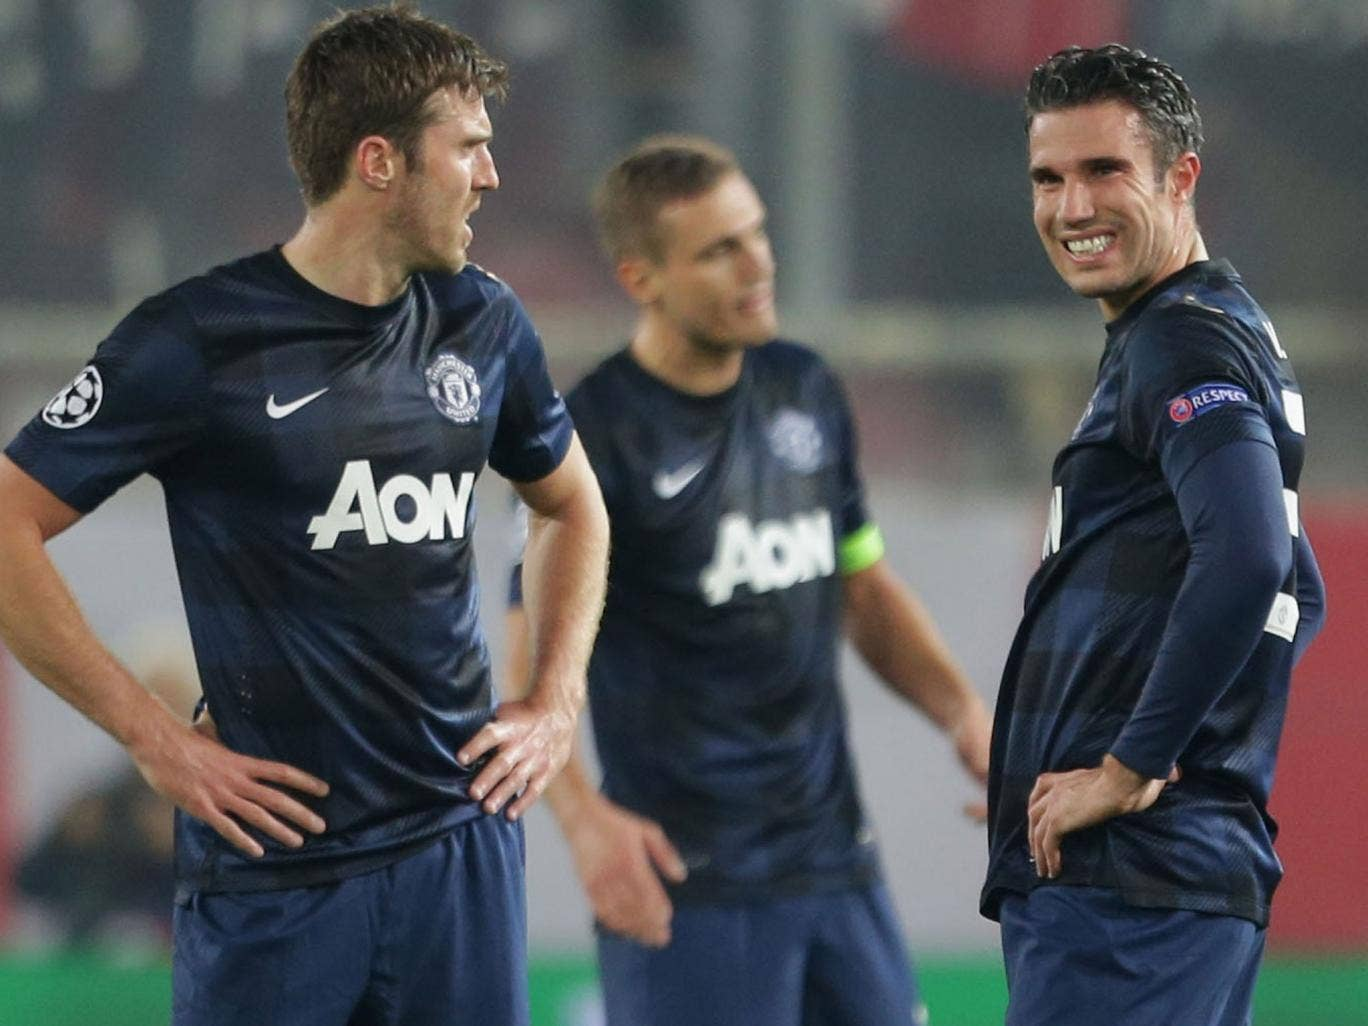 Michael Carrick (left), Nemanja Vidic (centre), and Robin van Persie (right) look on in despair during Manchester United's 2-0 defeat at Olympiakos